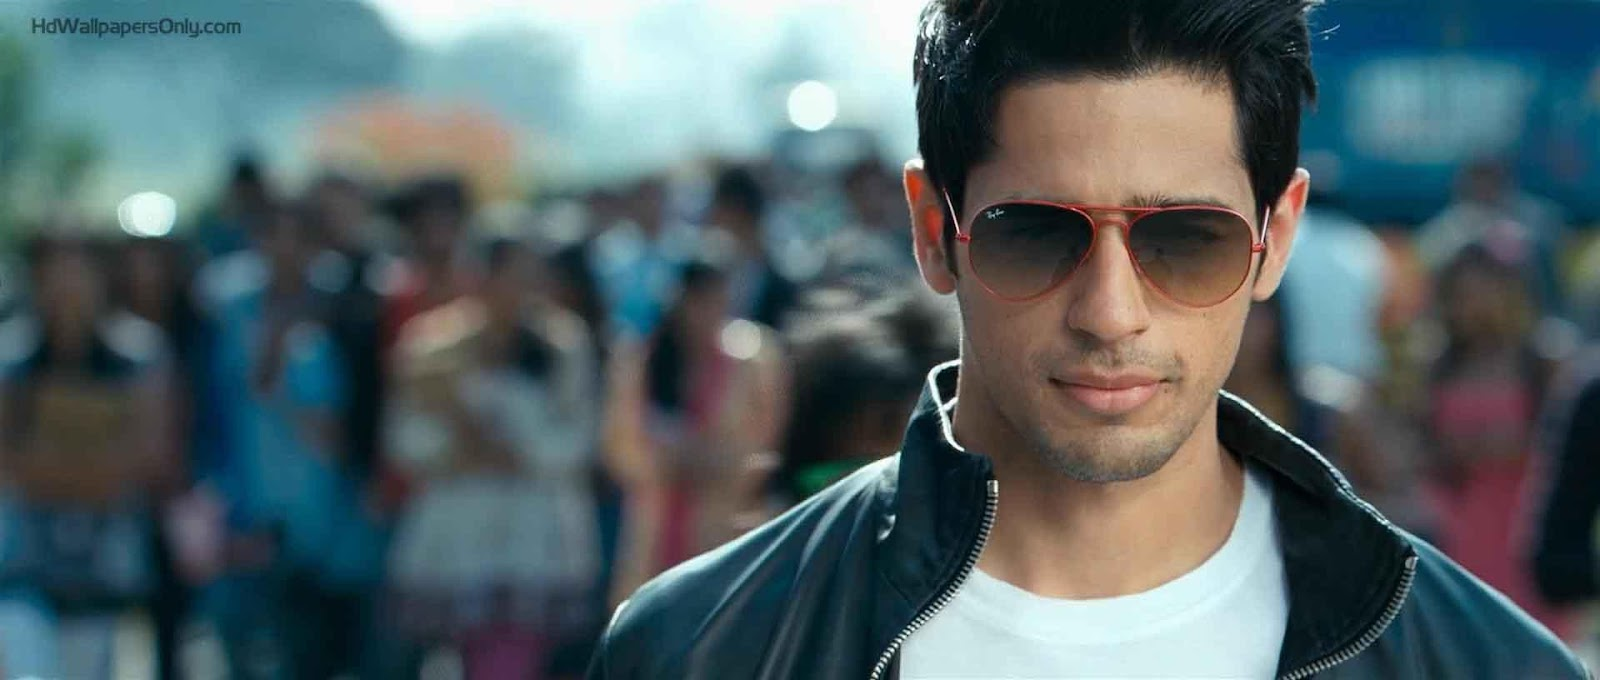 http://www.hdwallpaper4u.com/wp-content/uploads/2015/06/sidharth_malhotra_hd_wallpaper__student_of_the_year.jpg